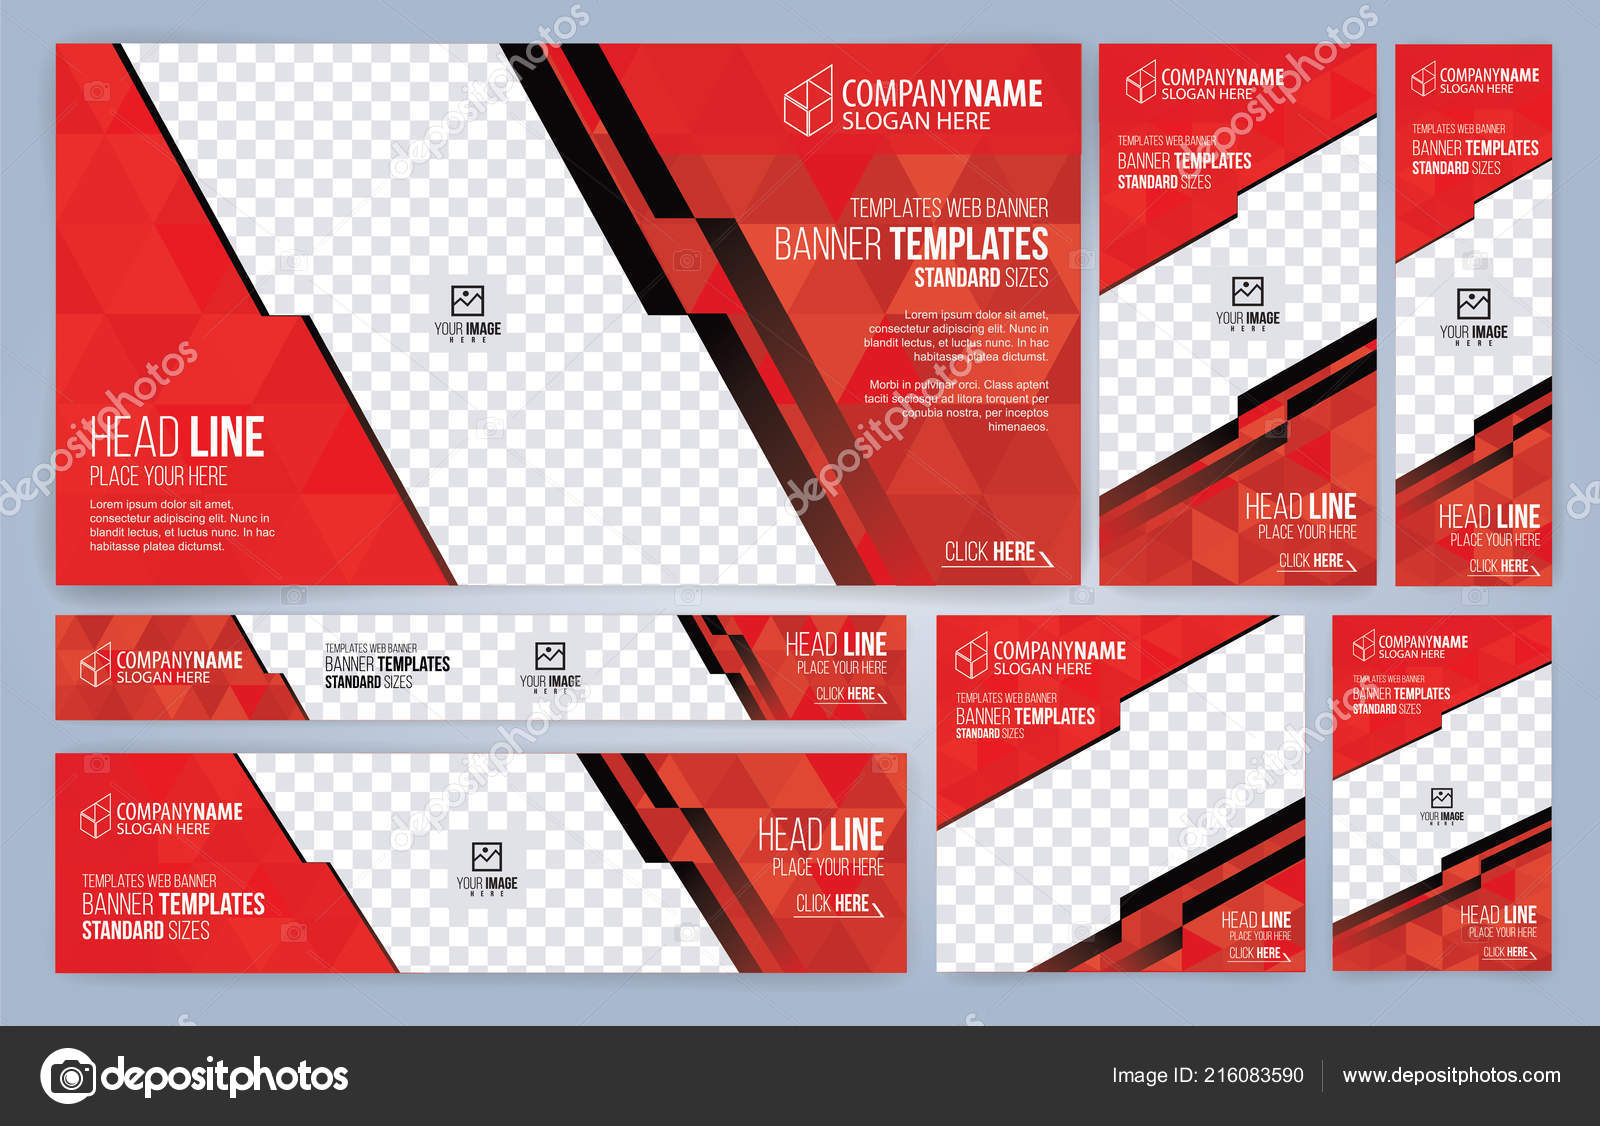 Red Black Web Banners Templates Standard Sizes Space Photo